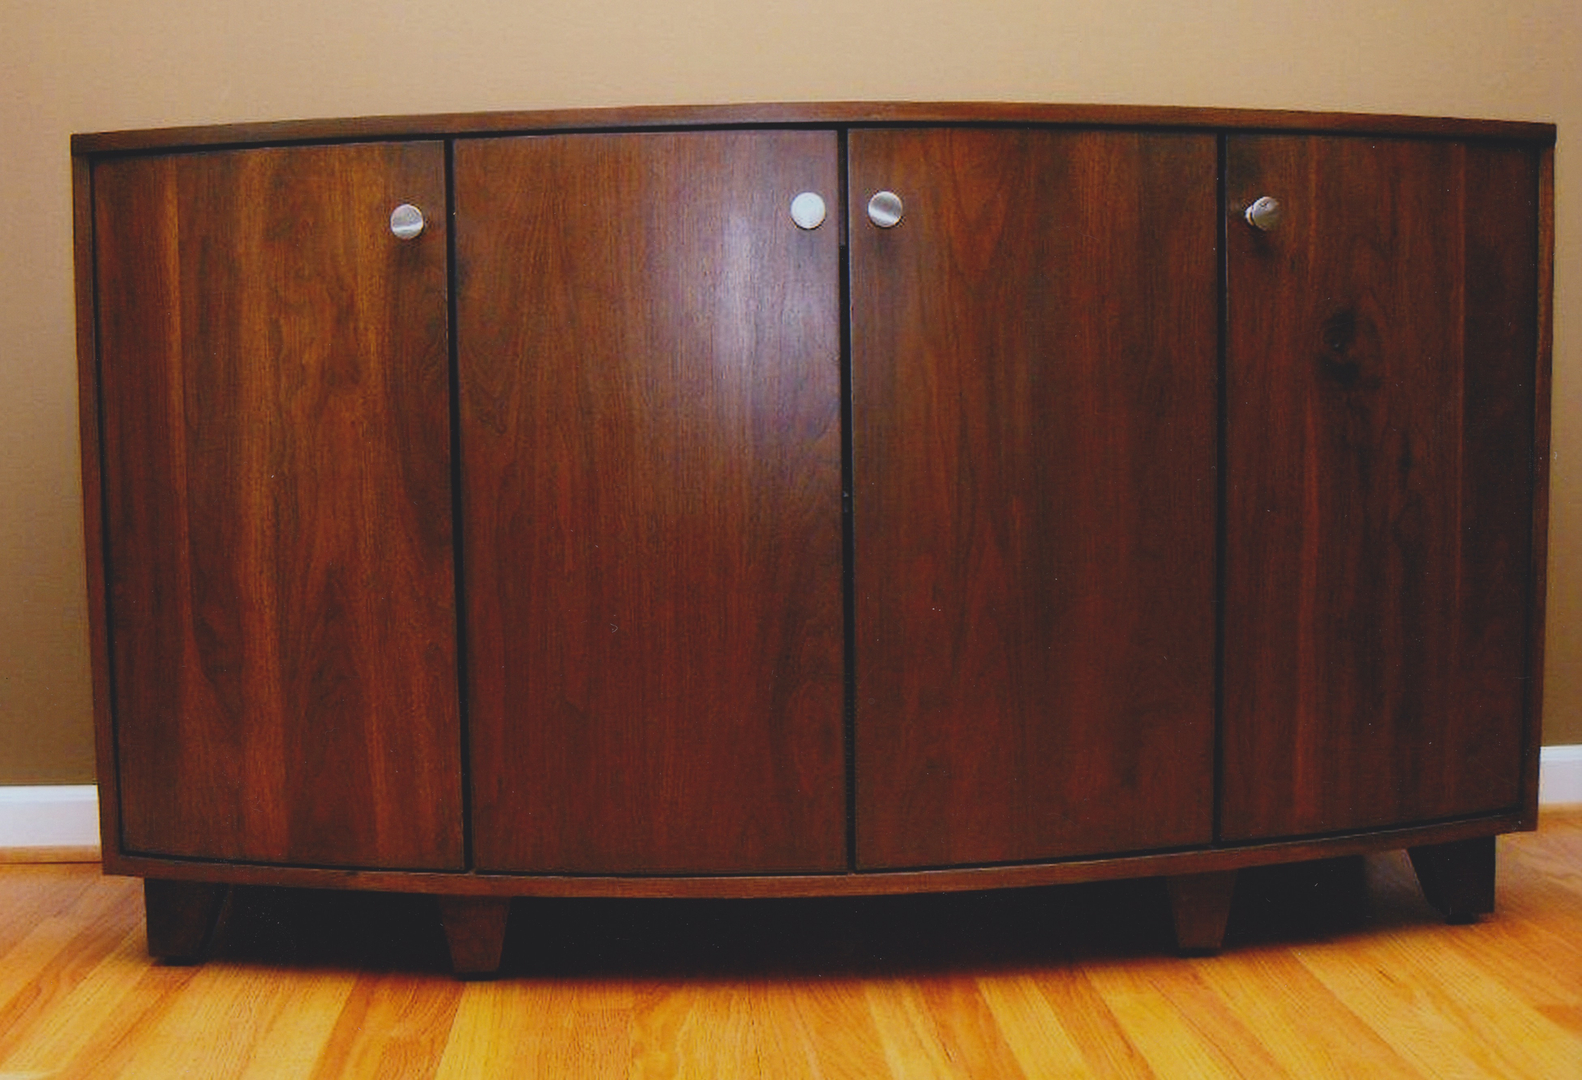 signature for solid wood fine furniture generations will provides among breed calgary high that cupboard a last stores quality amish listings rare